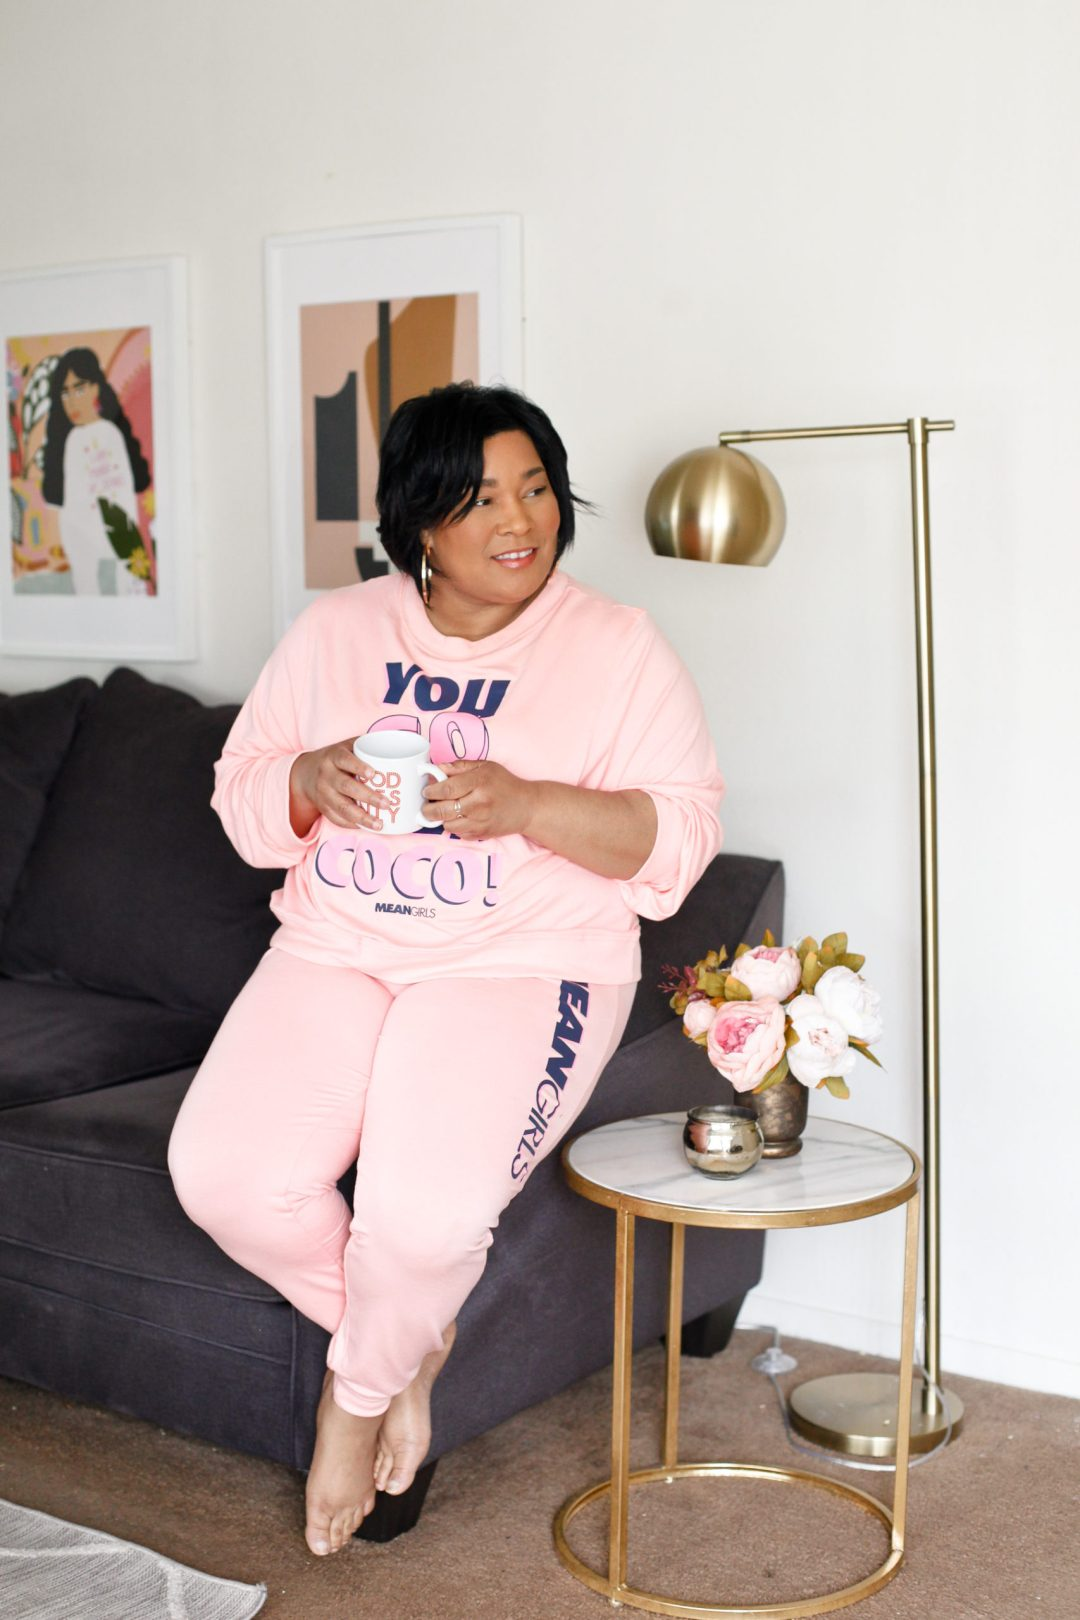 Affordable Loungewear You Go Glen Coco-1